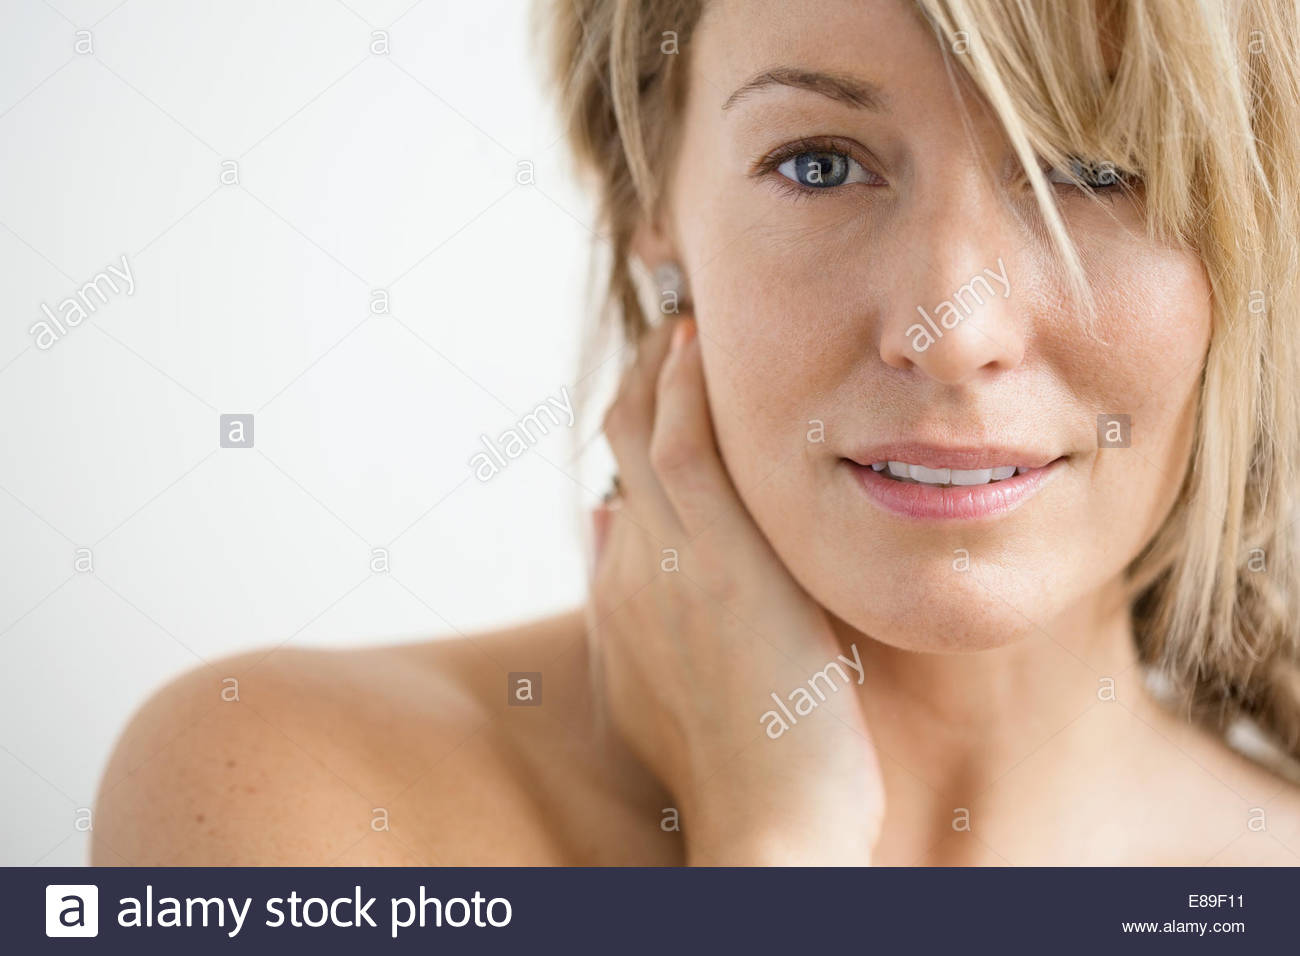 Close up of blonde woman with bare chest Photo Stock